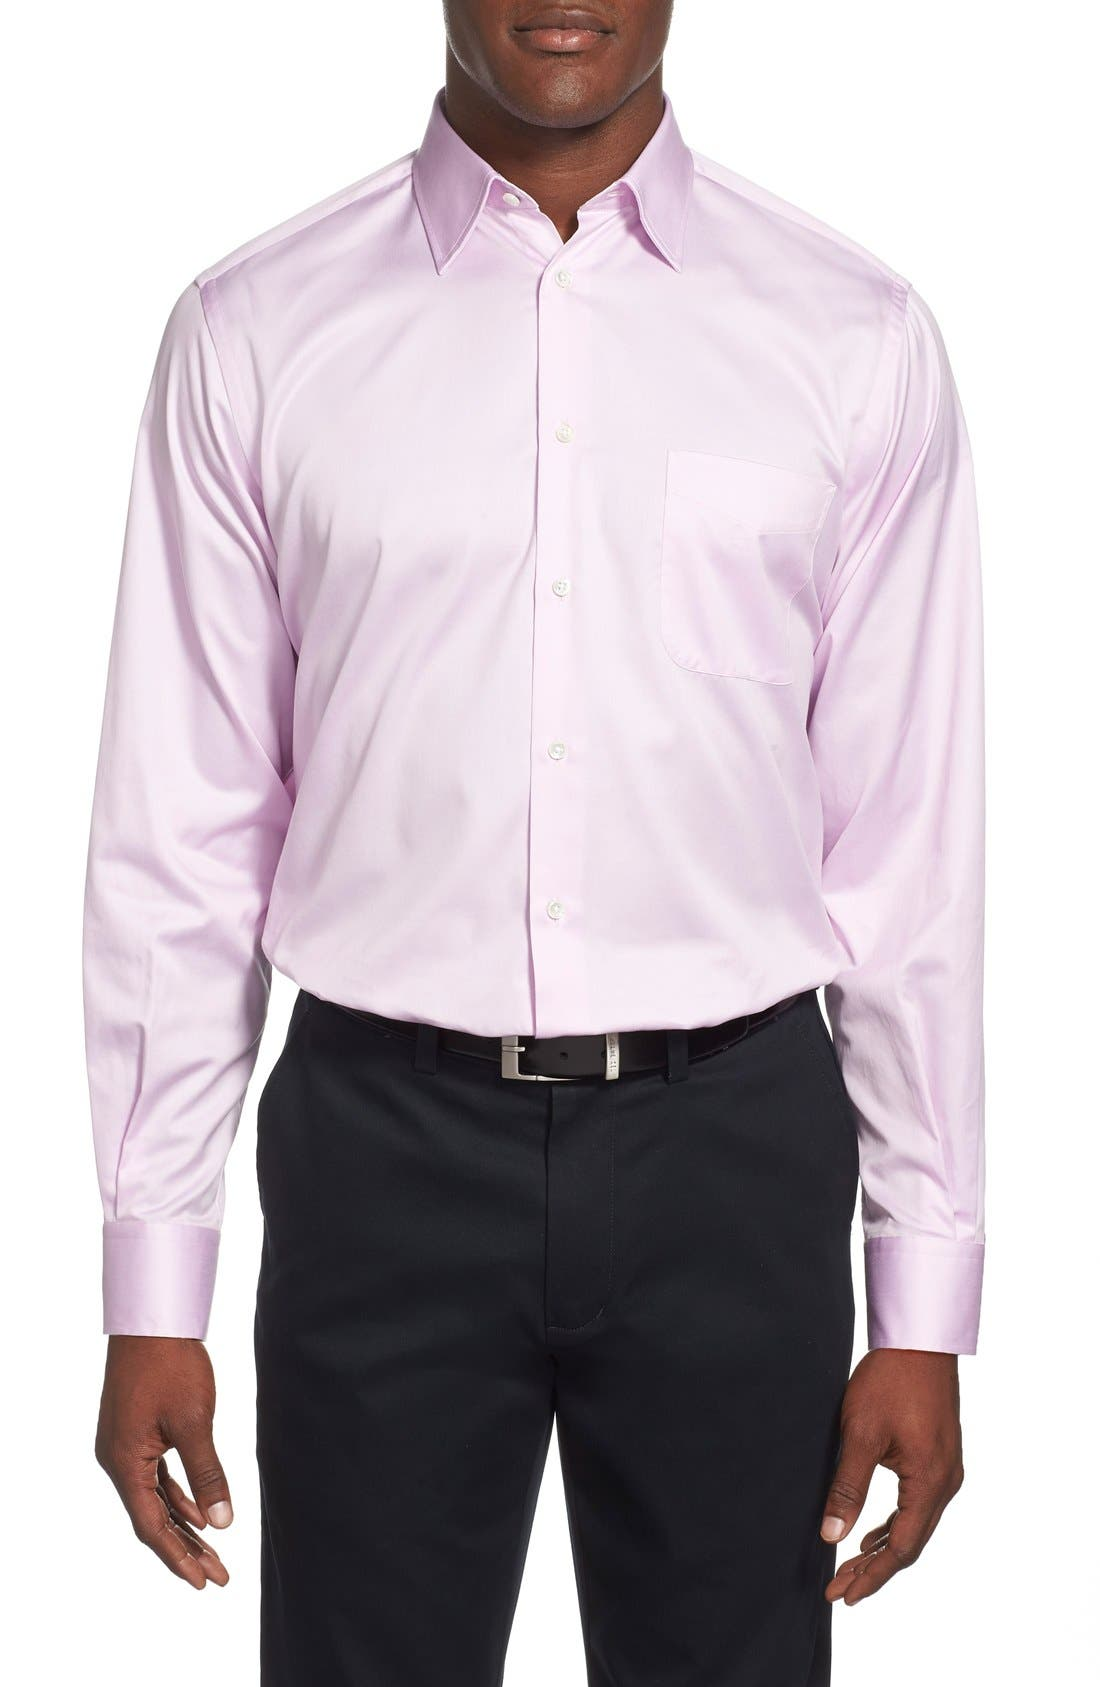 Alternate Image 2  - Ike Behar Regular Fit Solid Dress Shirt (Online Only)